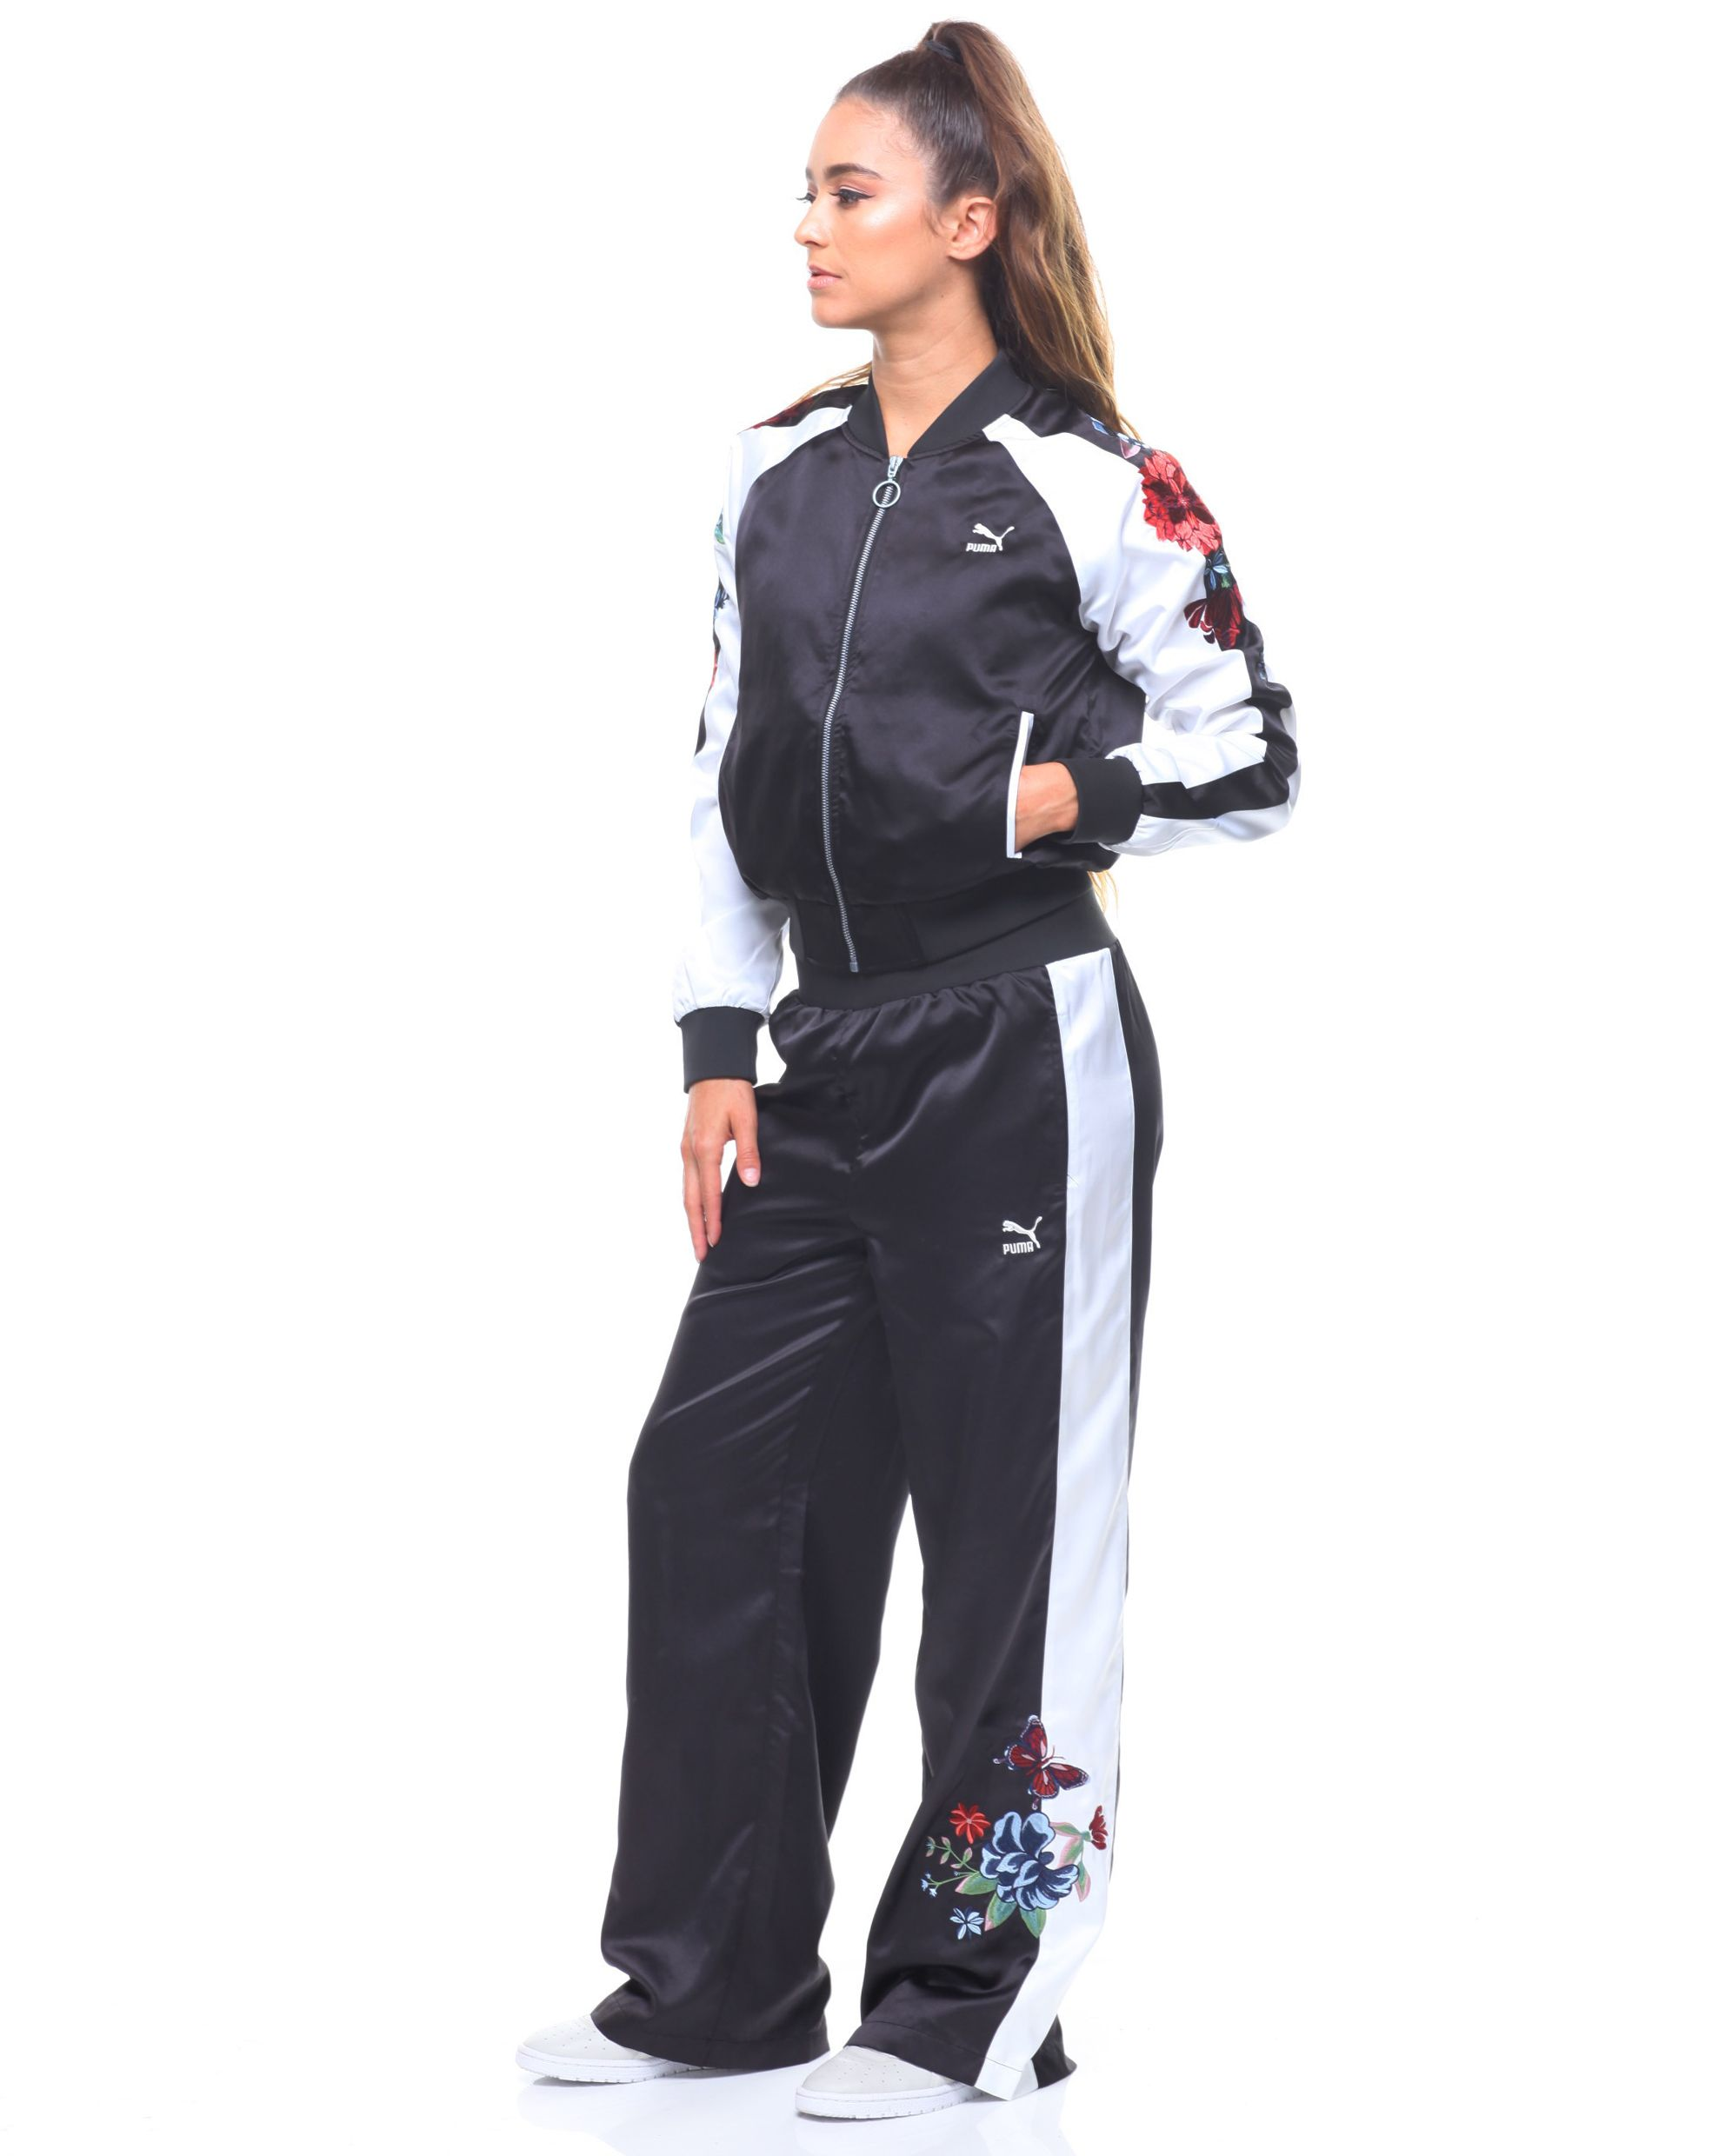 Premium Archive T7 Jacket Women S Outerwear From Puma Find Puma Fashion More At Drjays Com Outerwear Women Jackets For Women Puma Fashion [ 2480 x 1984 Pixel ]